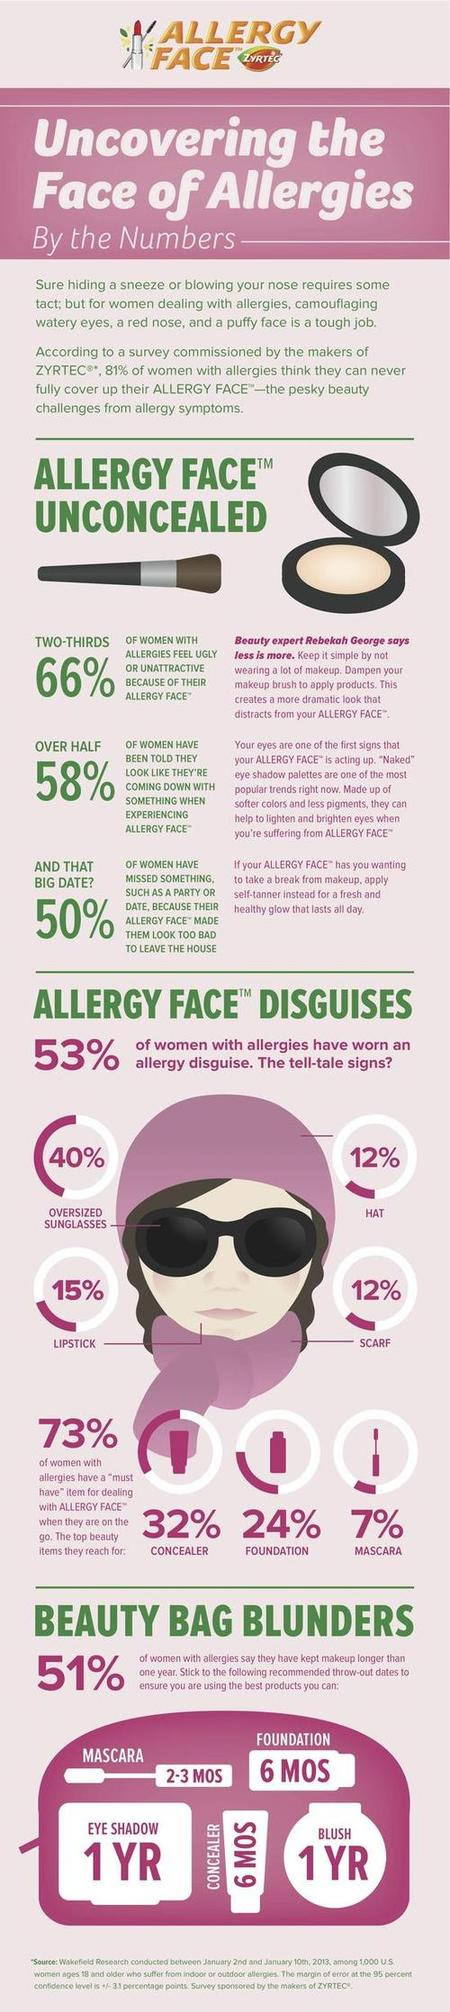 Image Result For Zyrtec For Allergies